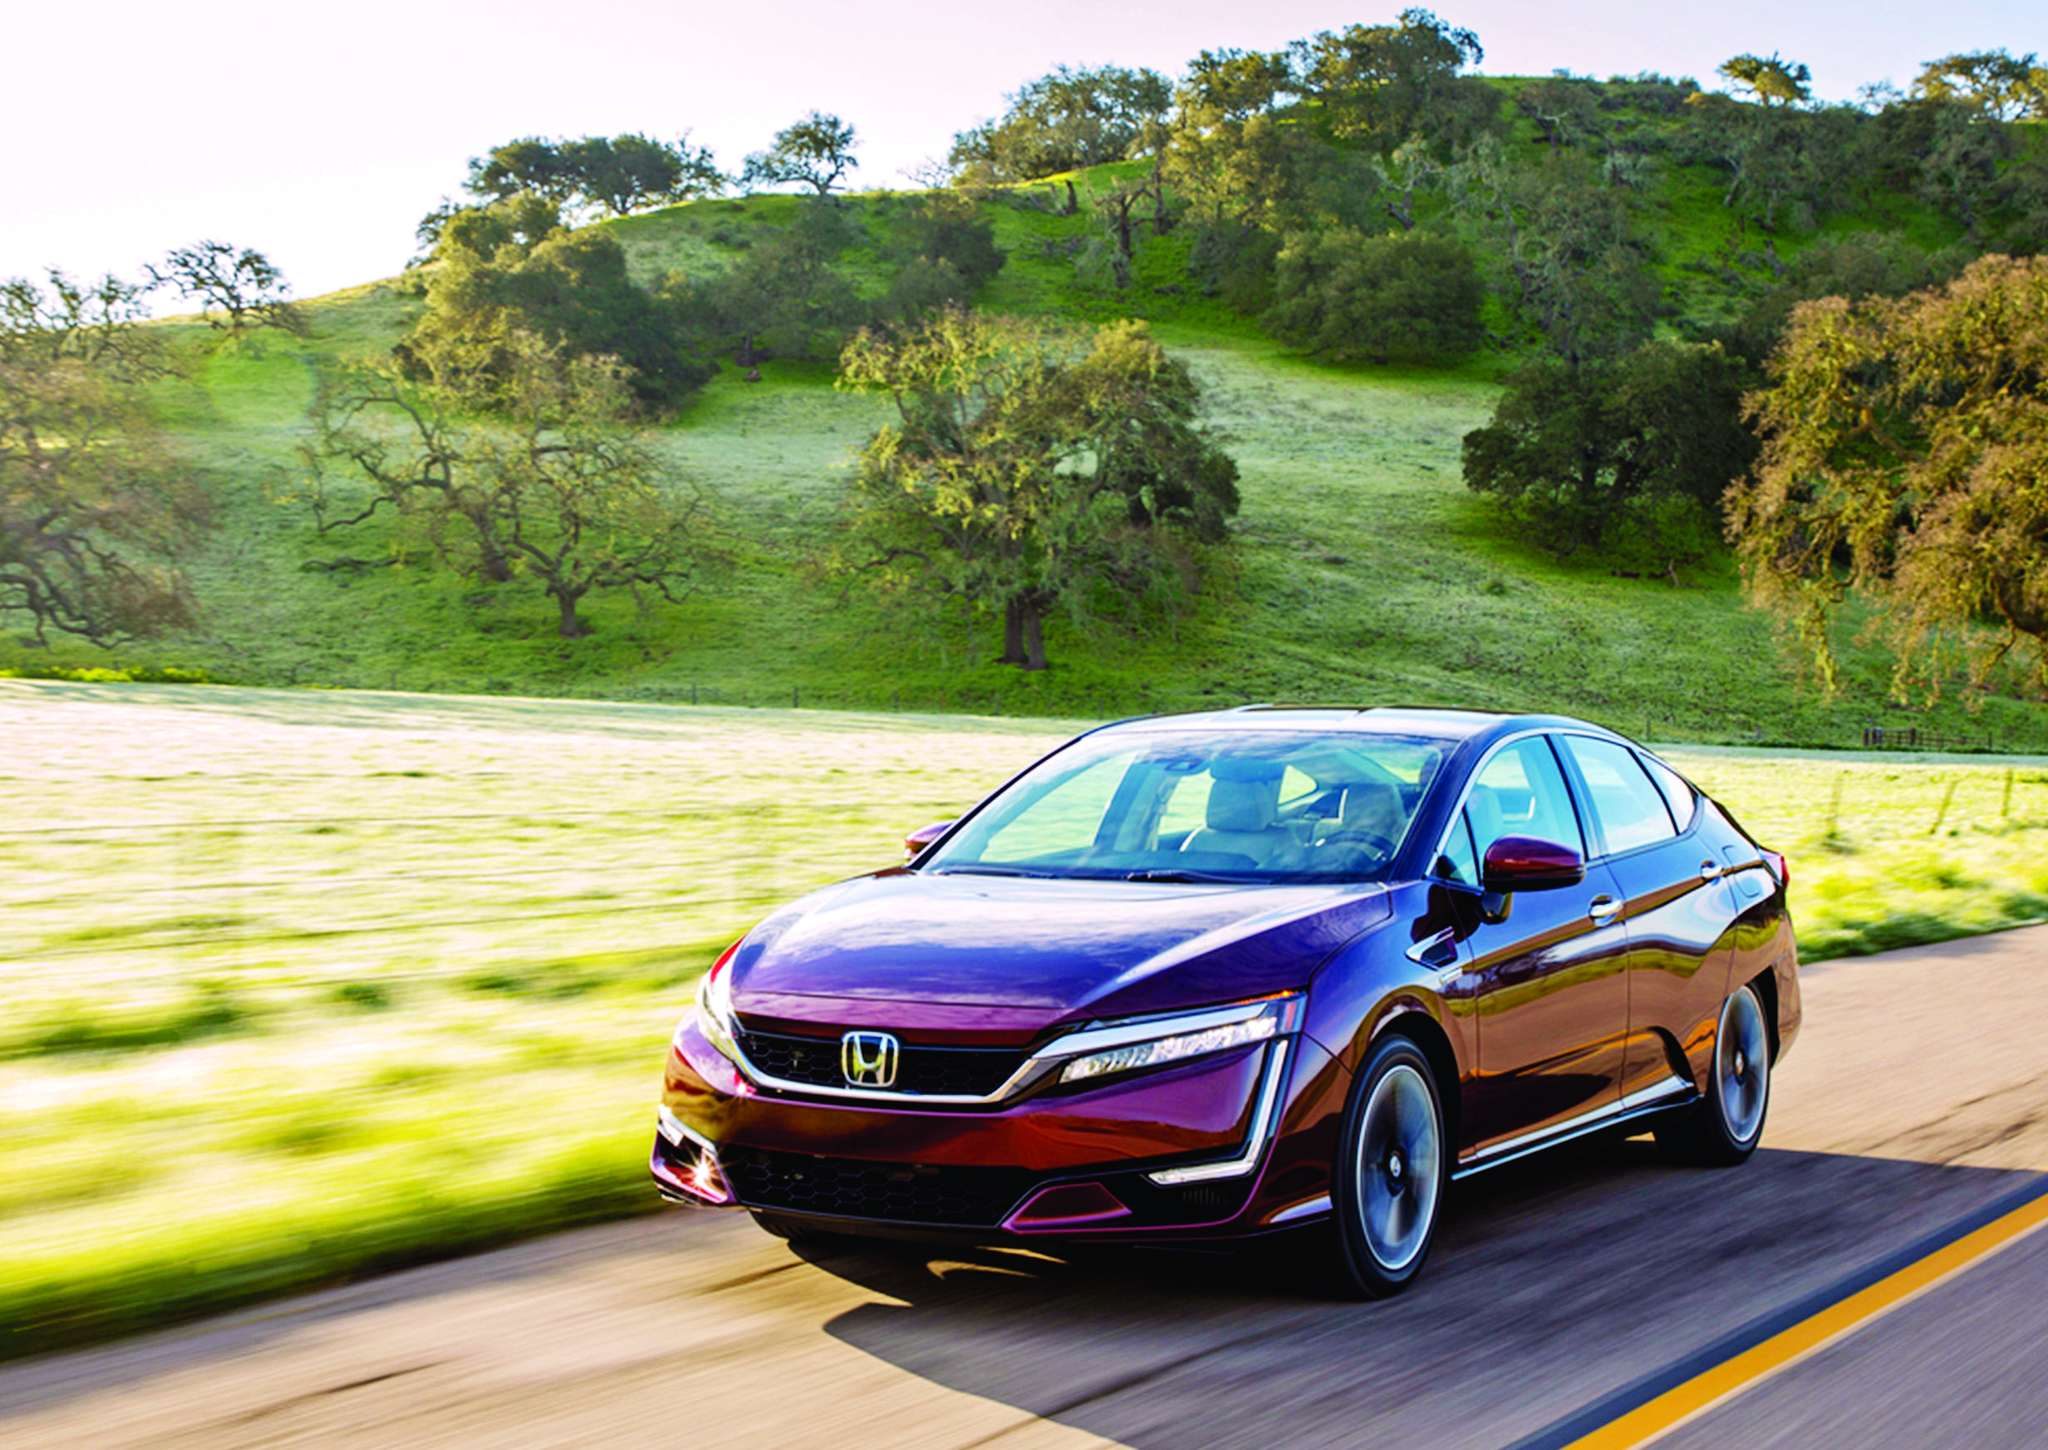 The 2017 Honda Clarity: In normal mode, steady and sedate; in Sport mode, energized and engaging.